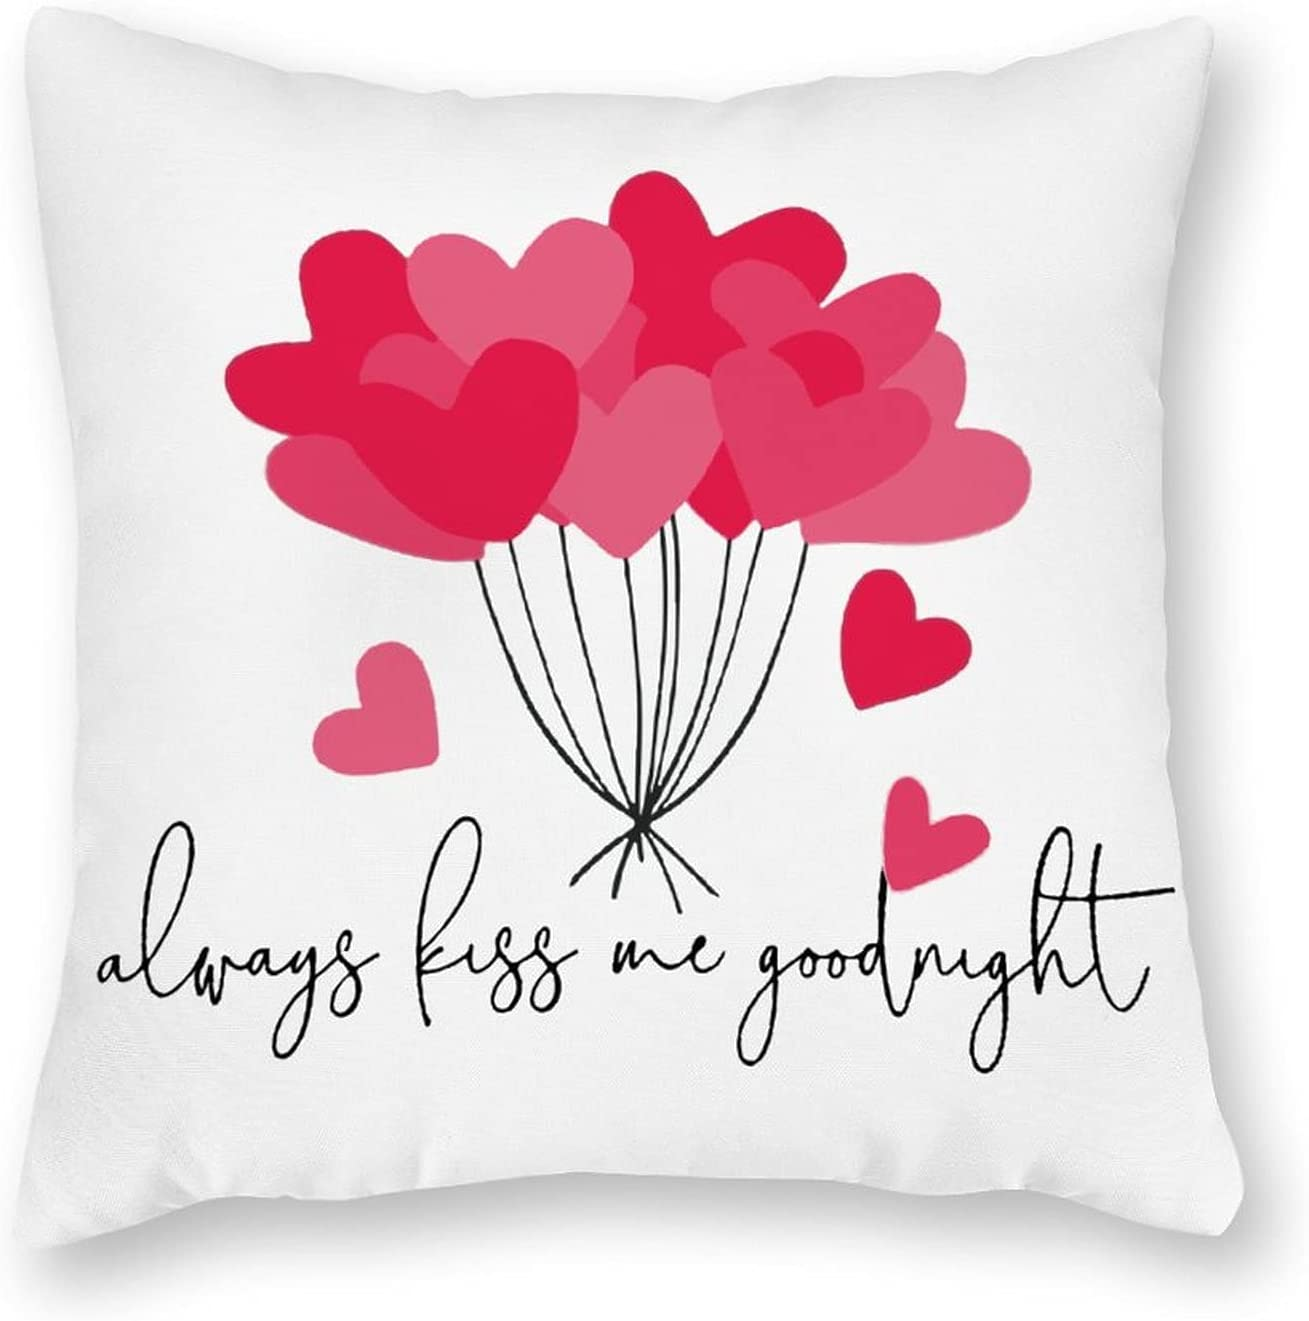 By Outstanding Unbranded Pillowcase Quantity limited Always Kiss Goodnight Me Body Microfiber